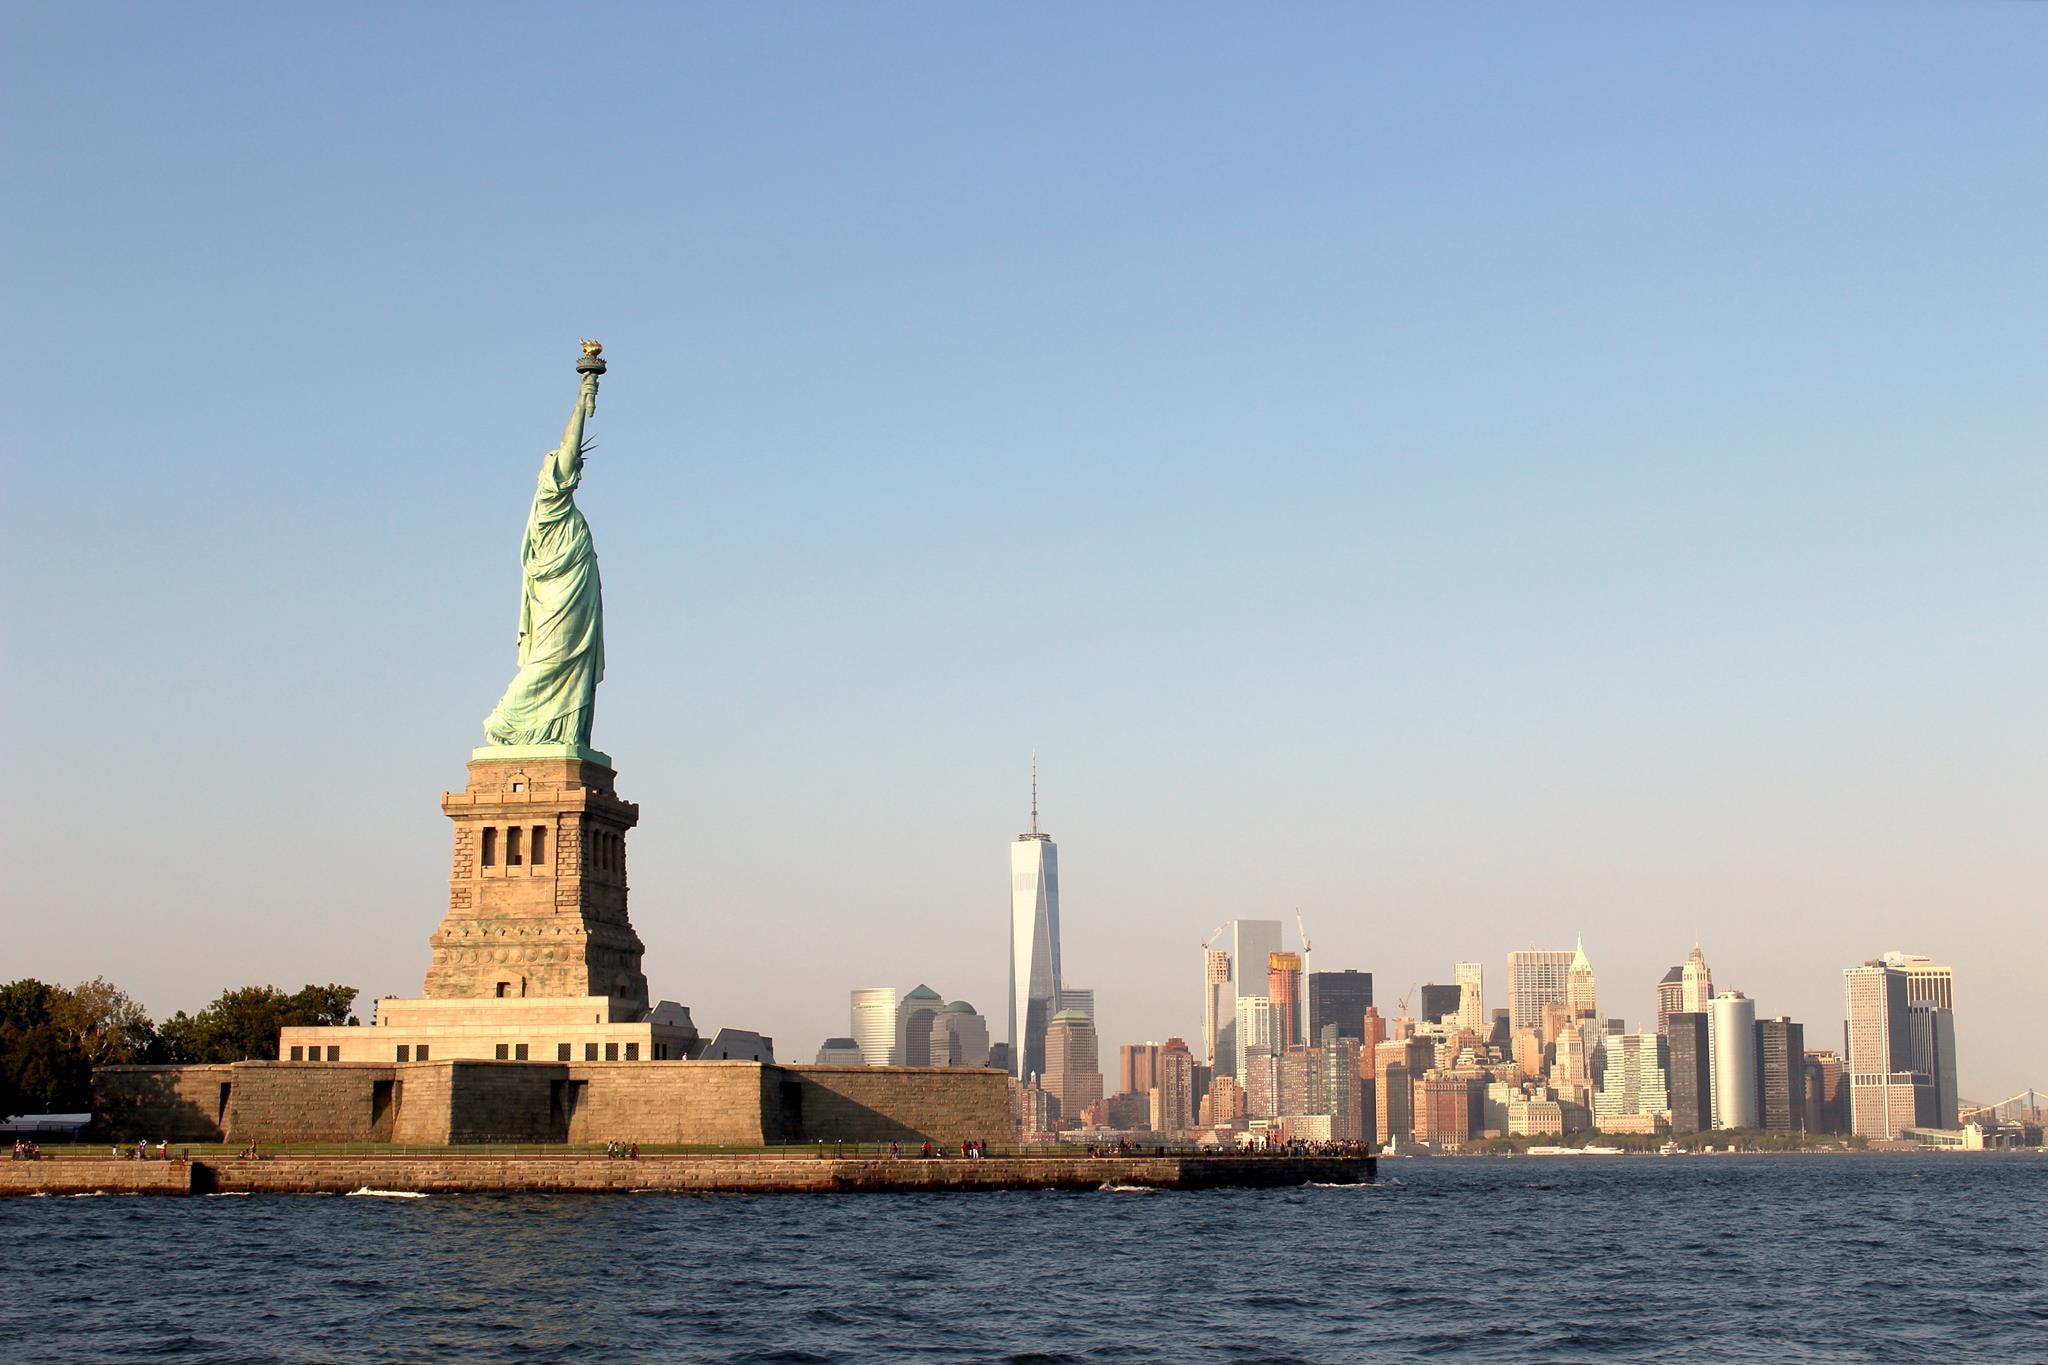 The Statue of Liberty with the New York City Financial District skyline in the distance